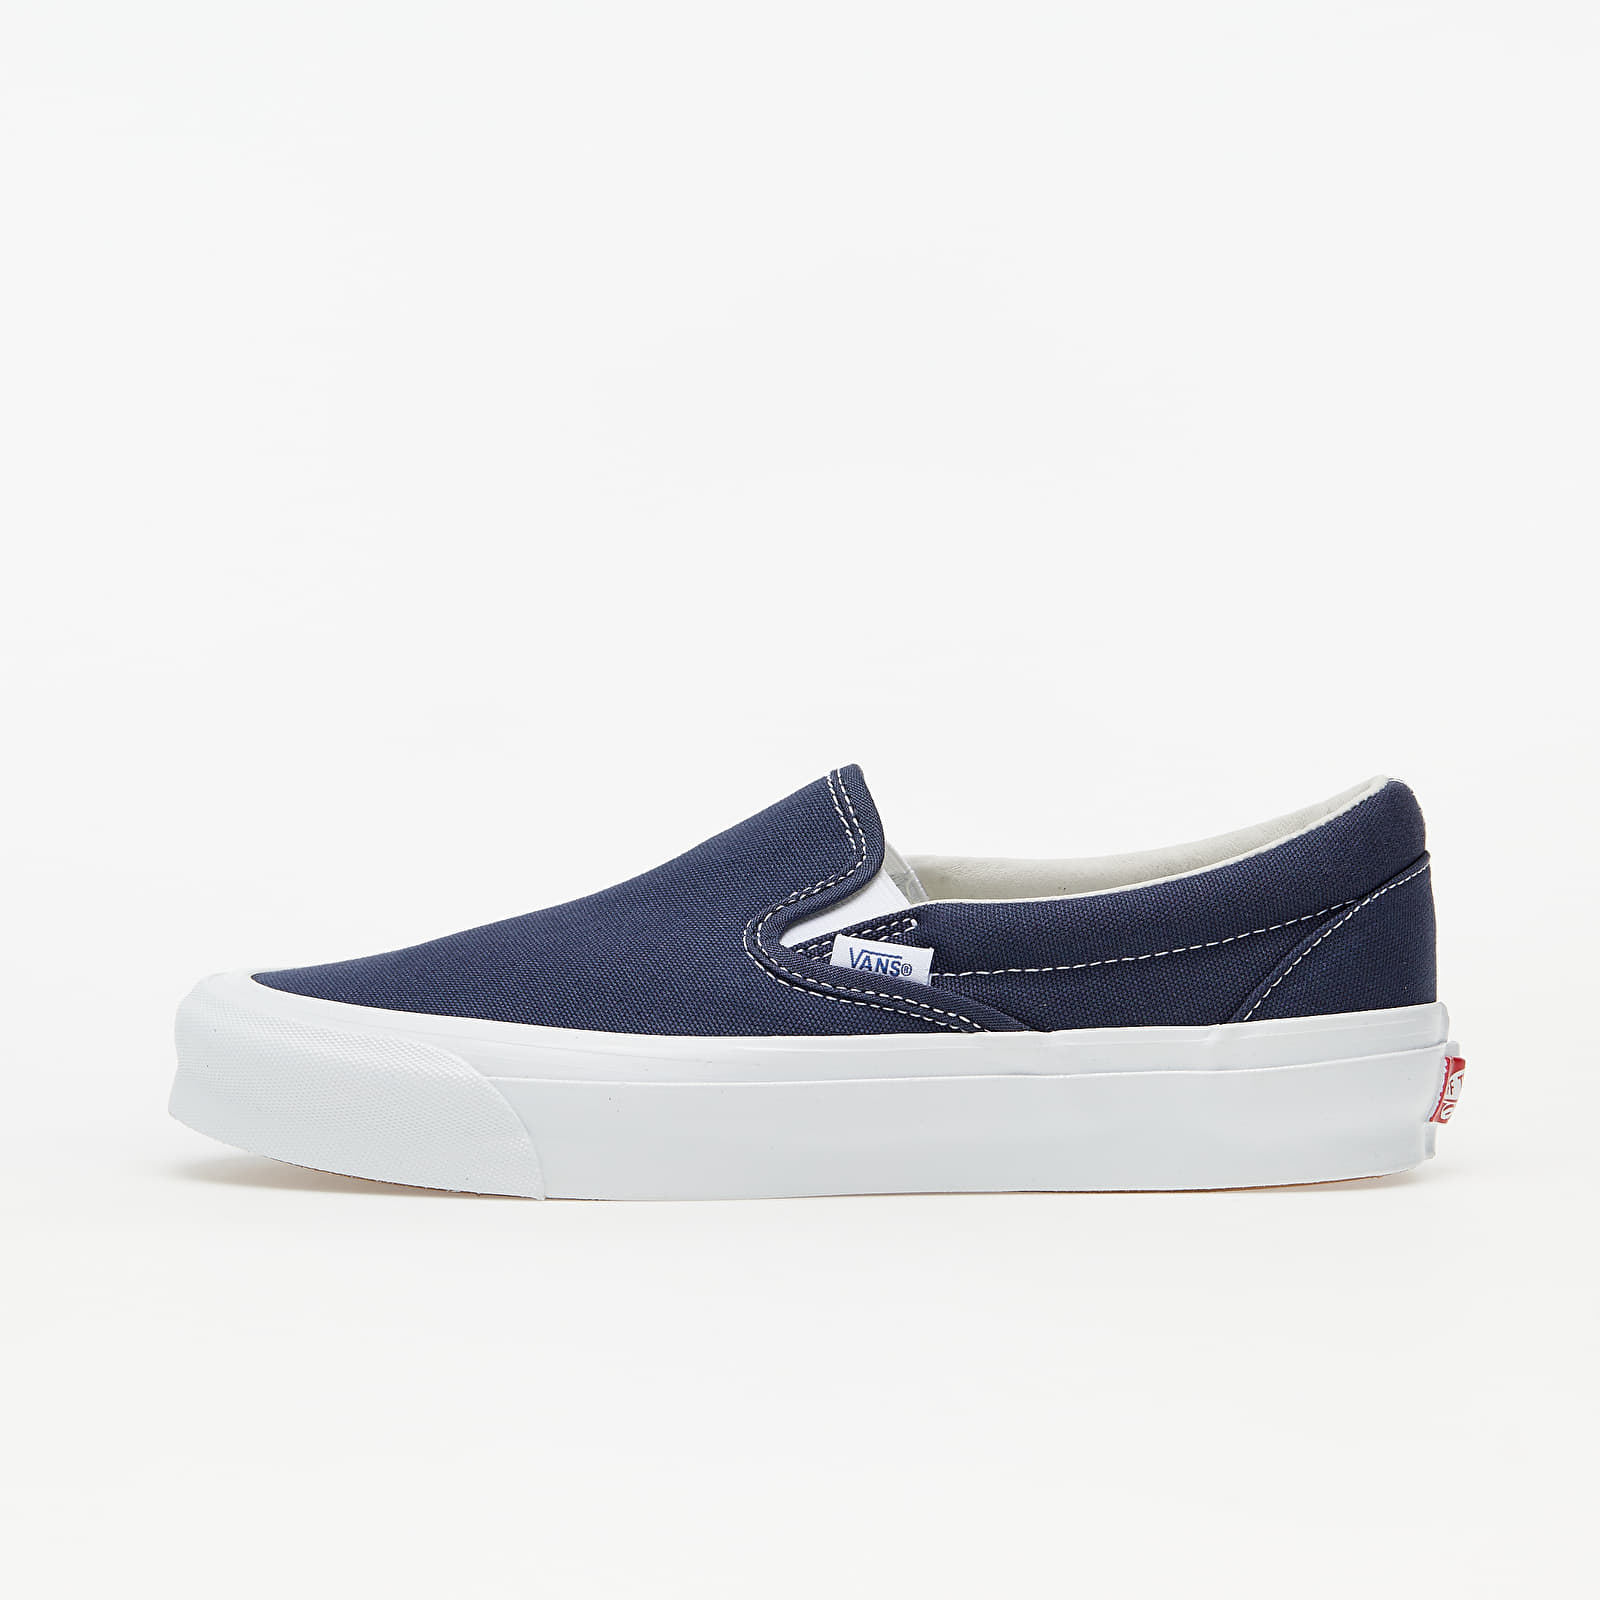 Vans OG Classic Slip-On (Canvas) Navy EUR 36